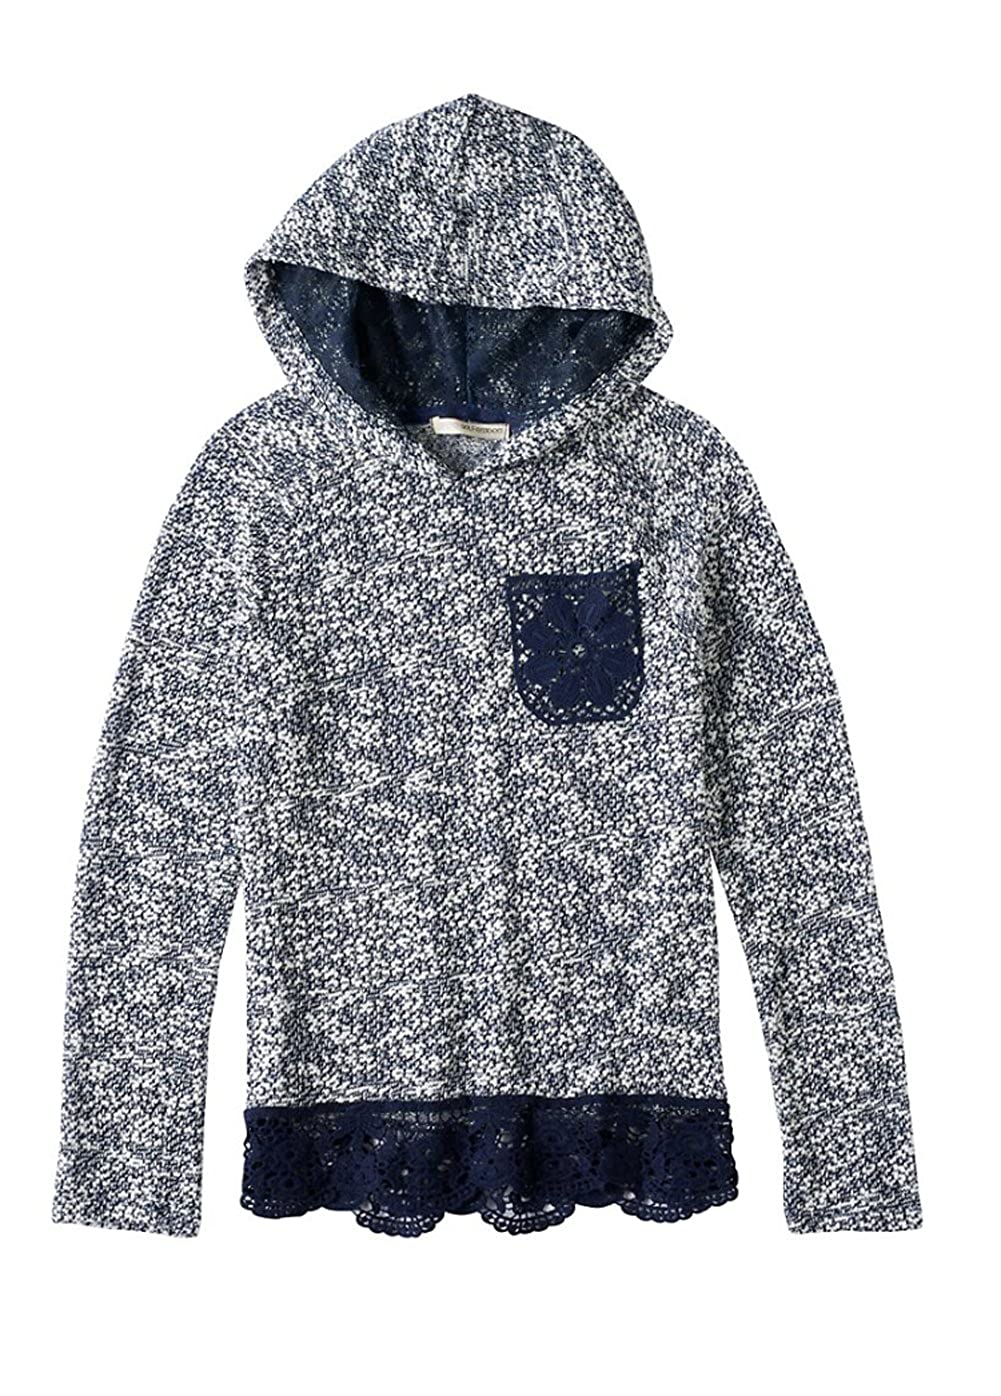 Blue Print Self Esteem Girls NEP Lace Trim Sweater Hoodie